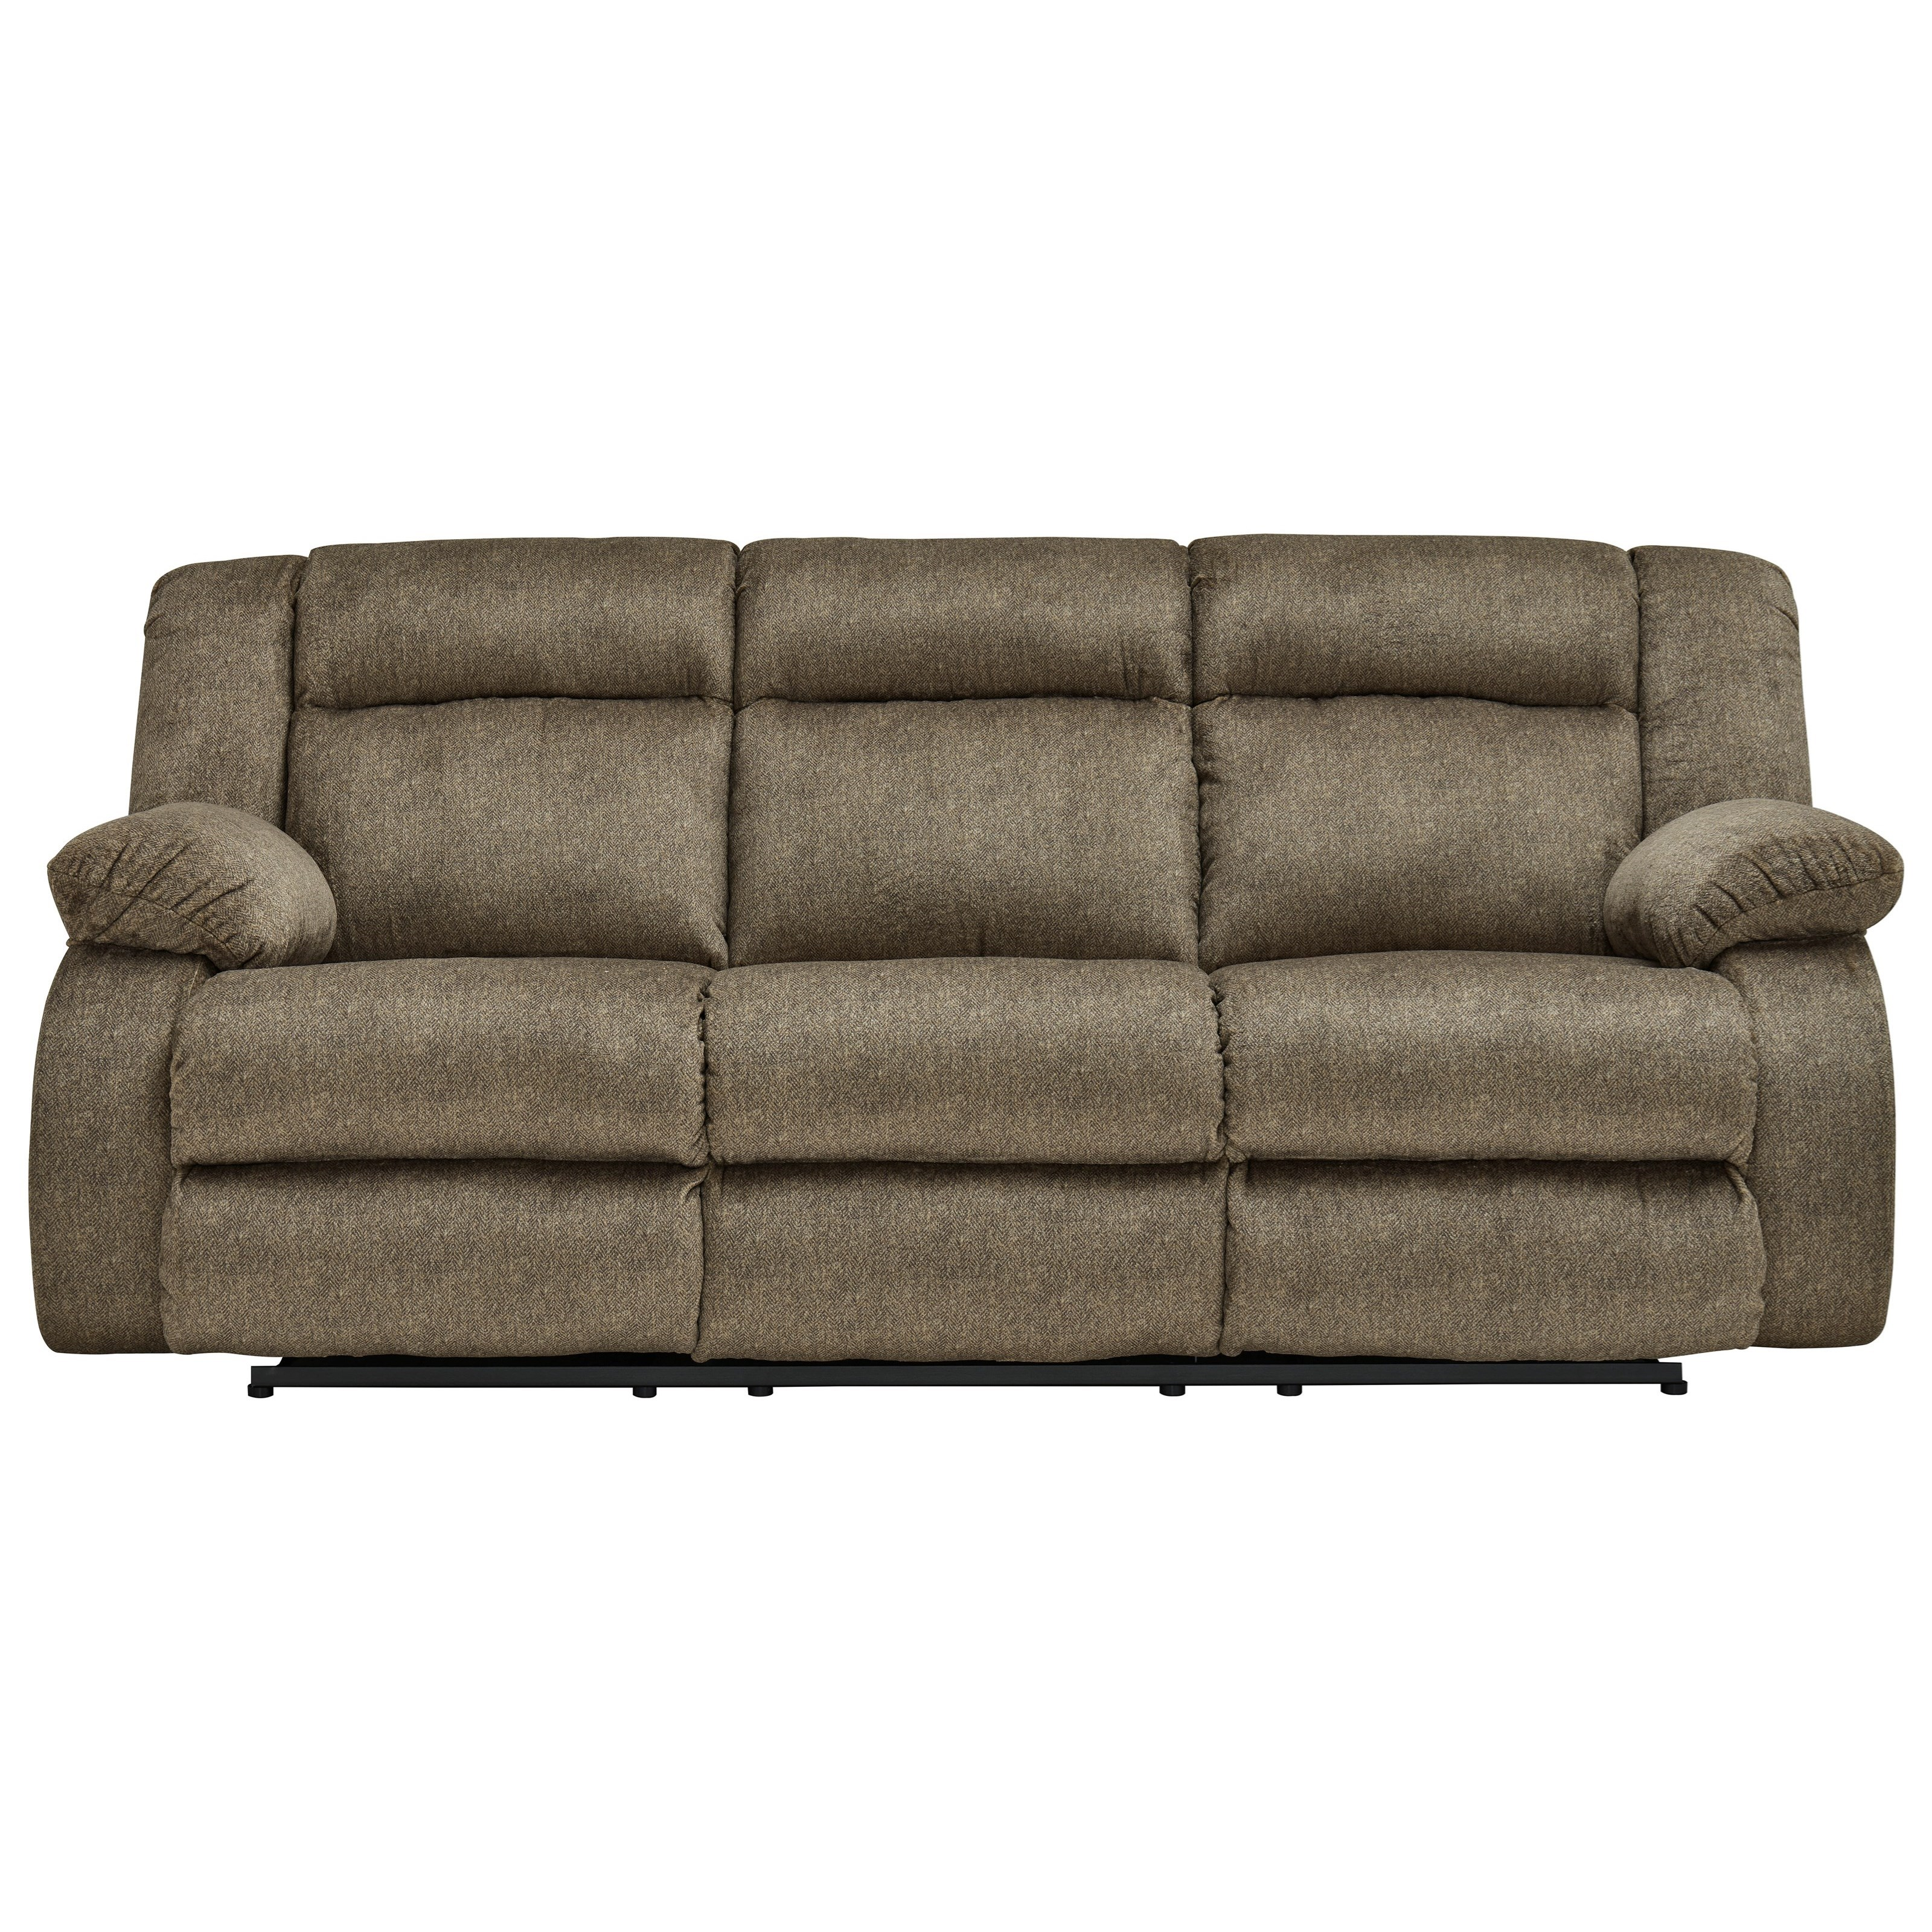 Burkner Reclining Power Sofa by Signature Design by Ashley at Northeast Factory Direct